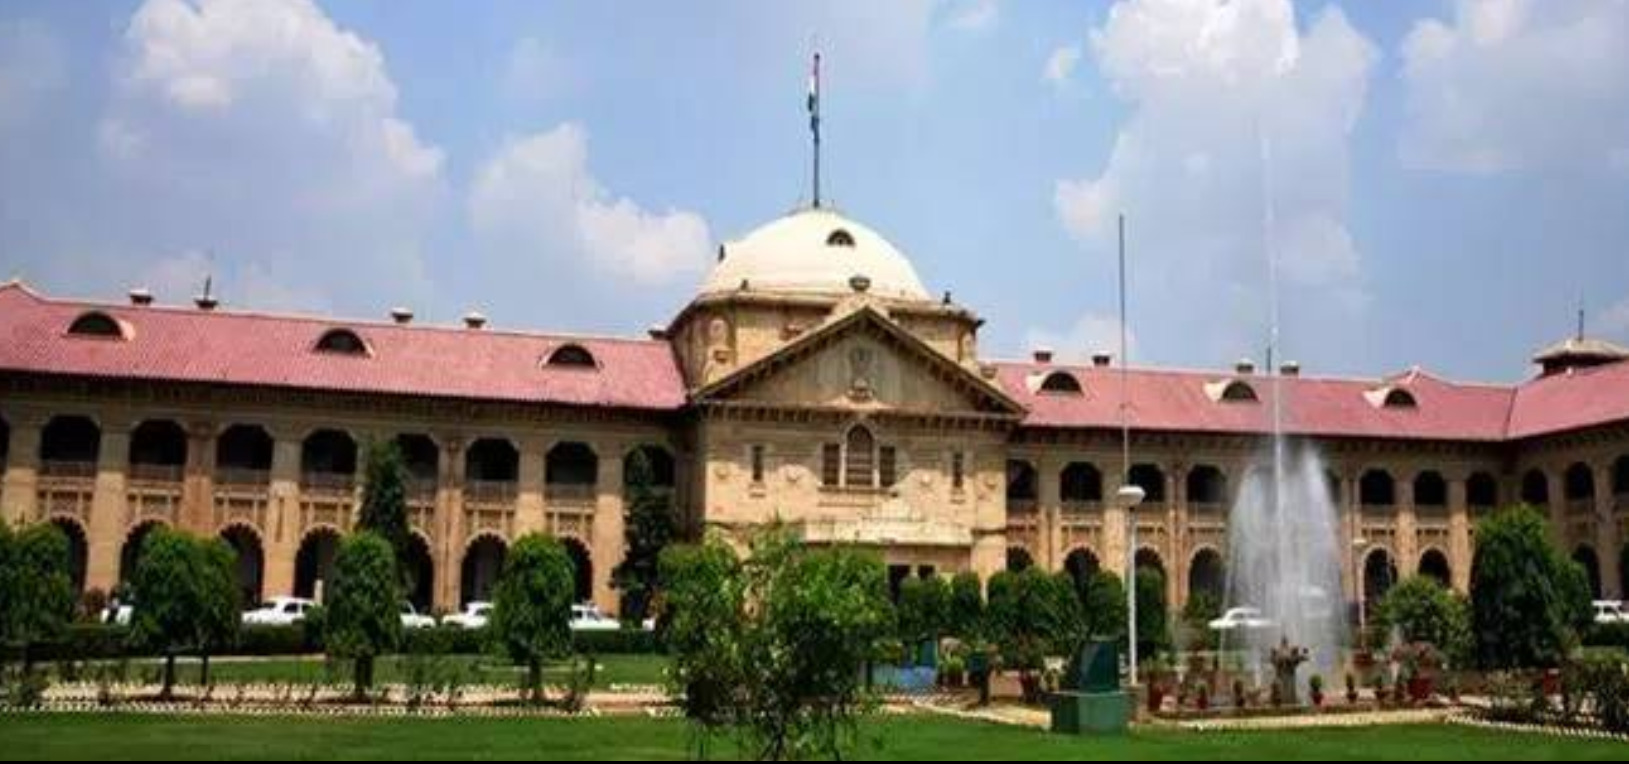 Verbal rampage by Principal judge after Allahabad HC hauls him for up for registering a case of Muslim couple under Hindu Marriage Act